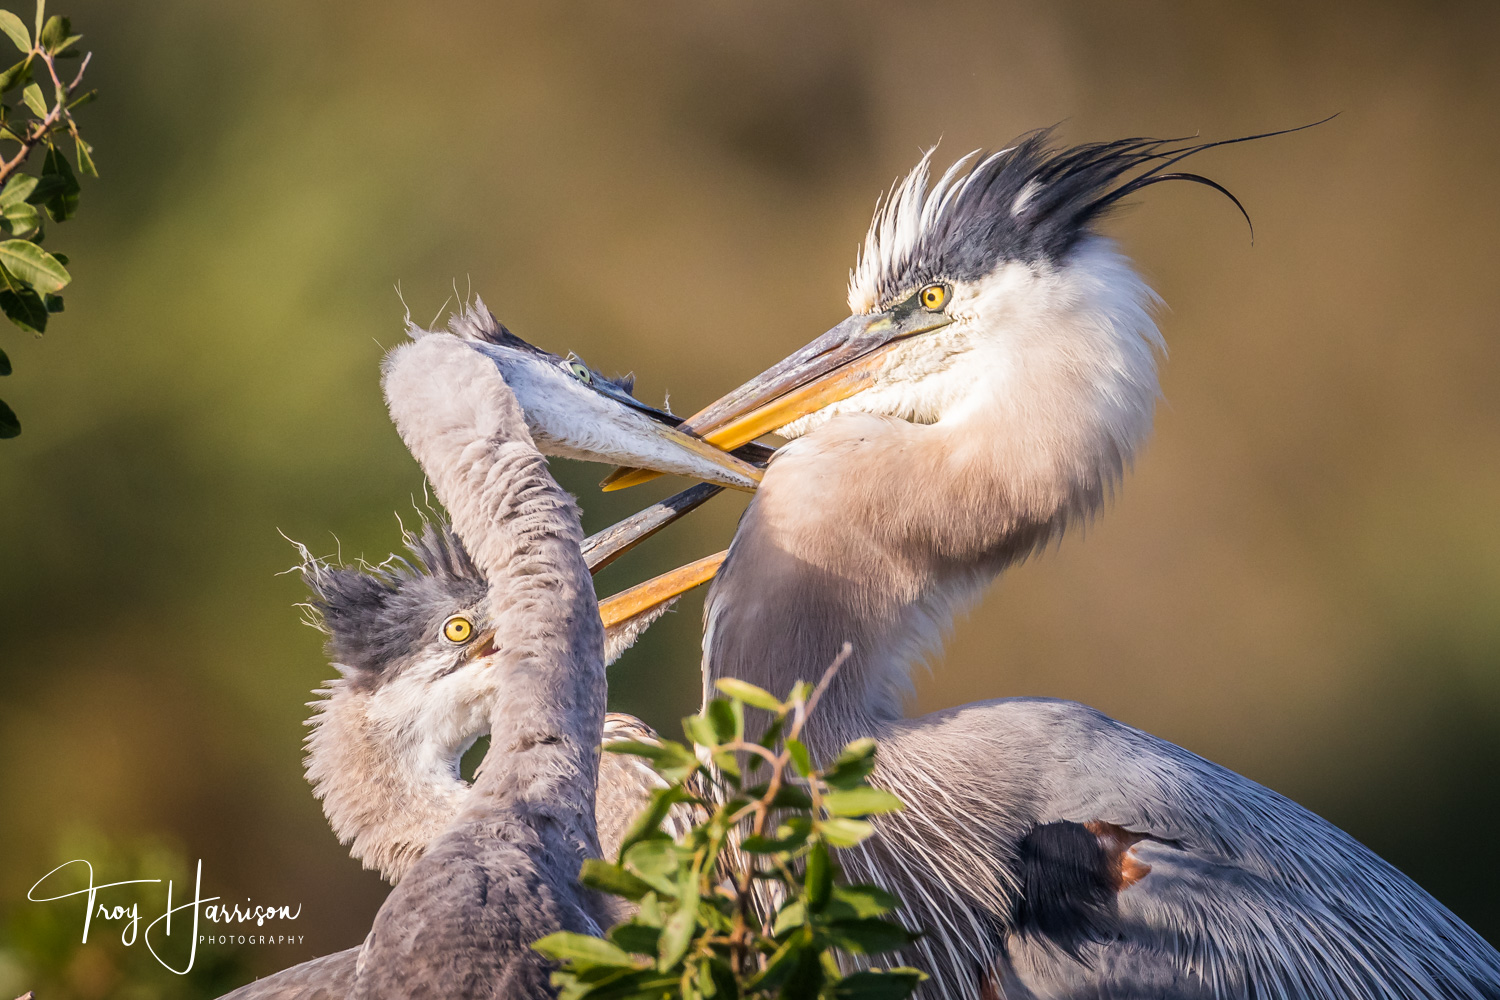 1 - Great Blue Herons, Everglades, Feb. 2019, img 146.jpg